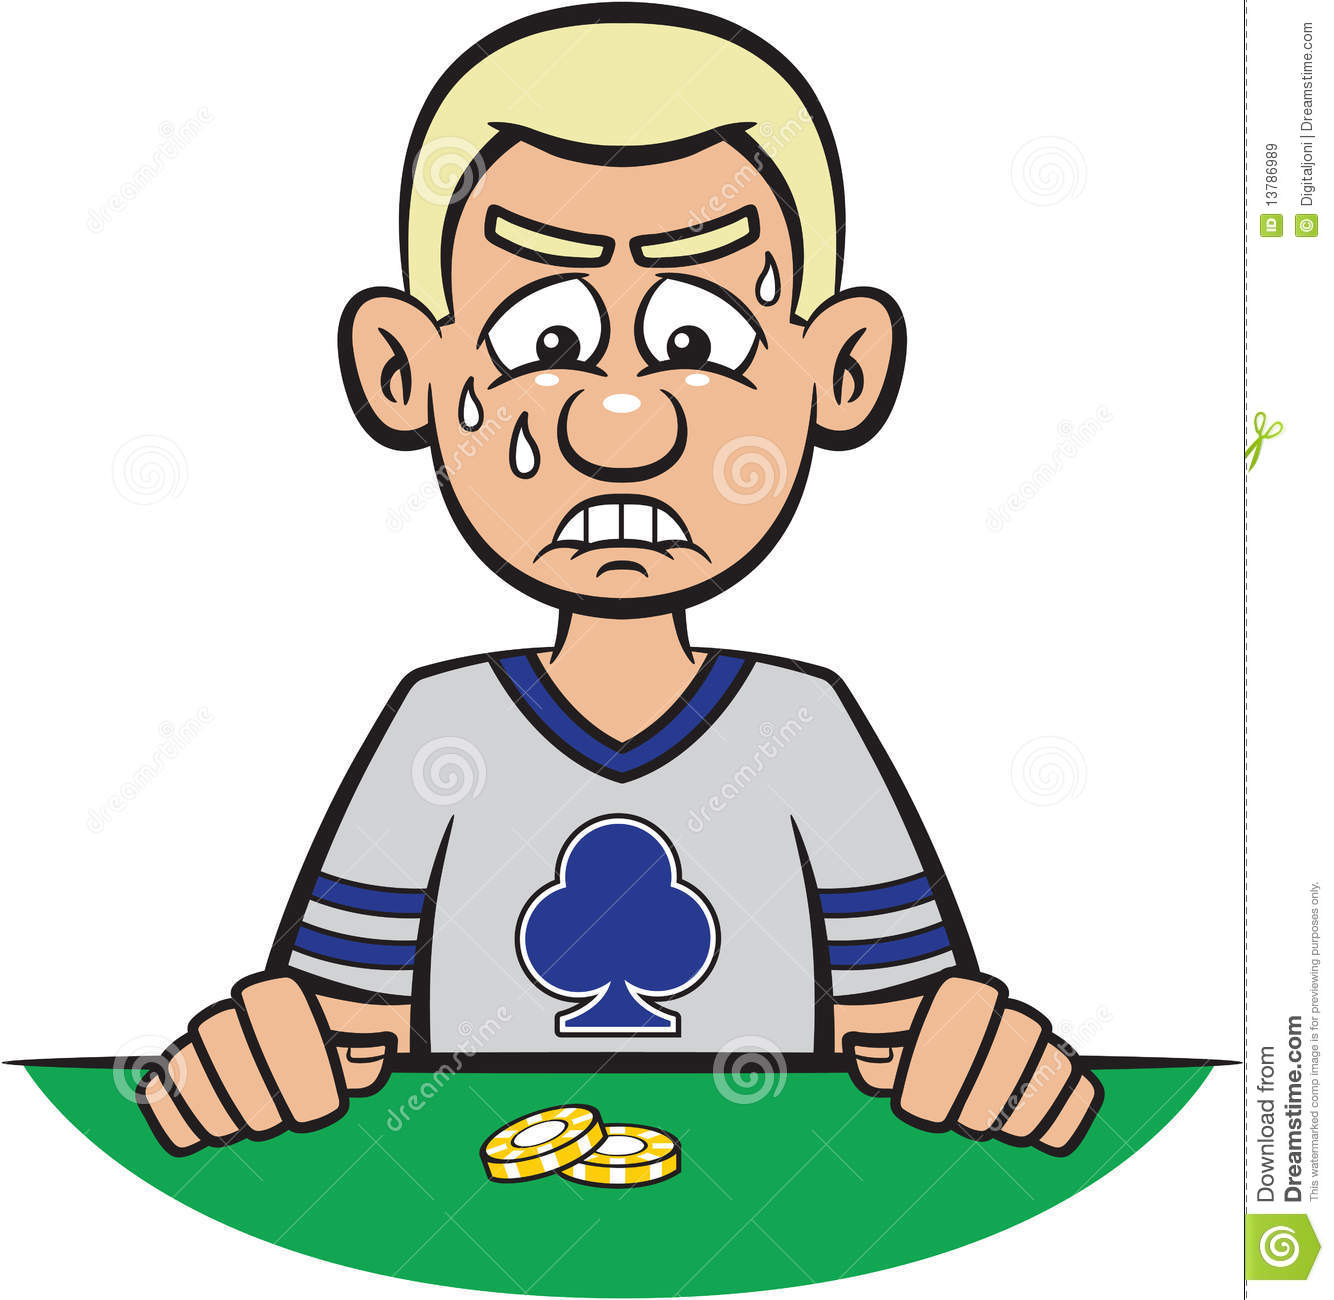 1334x1300 Poker Clipart Poker Player